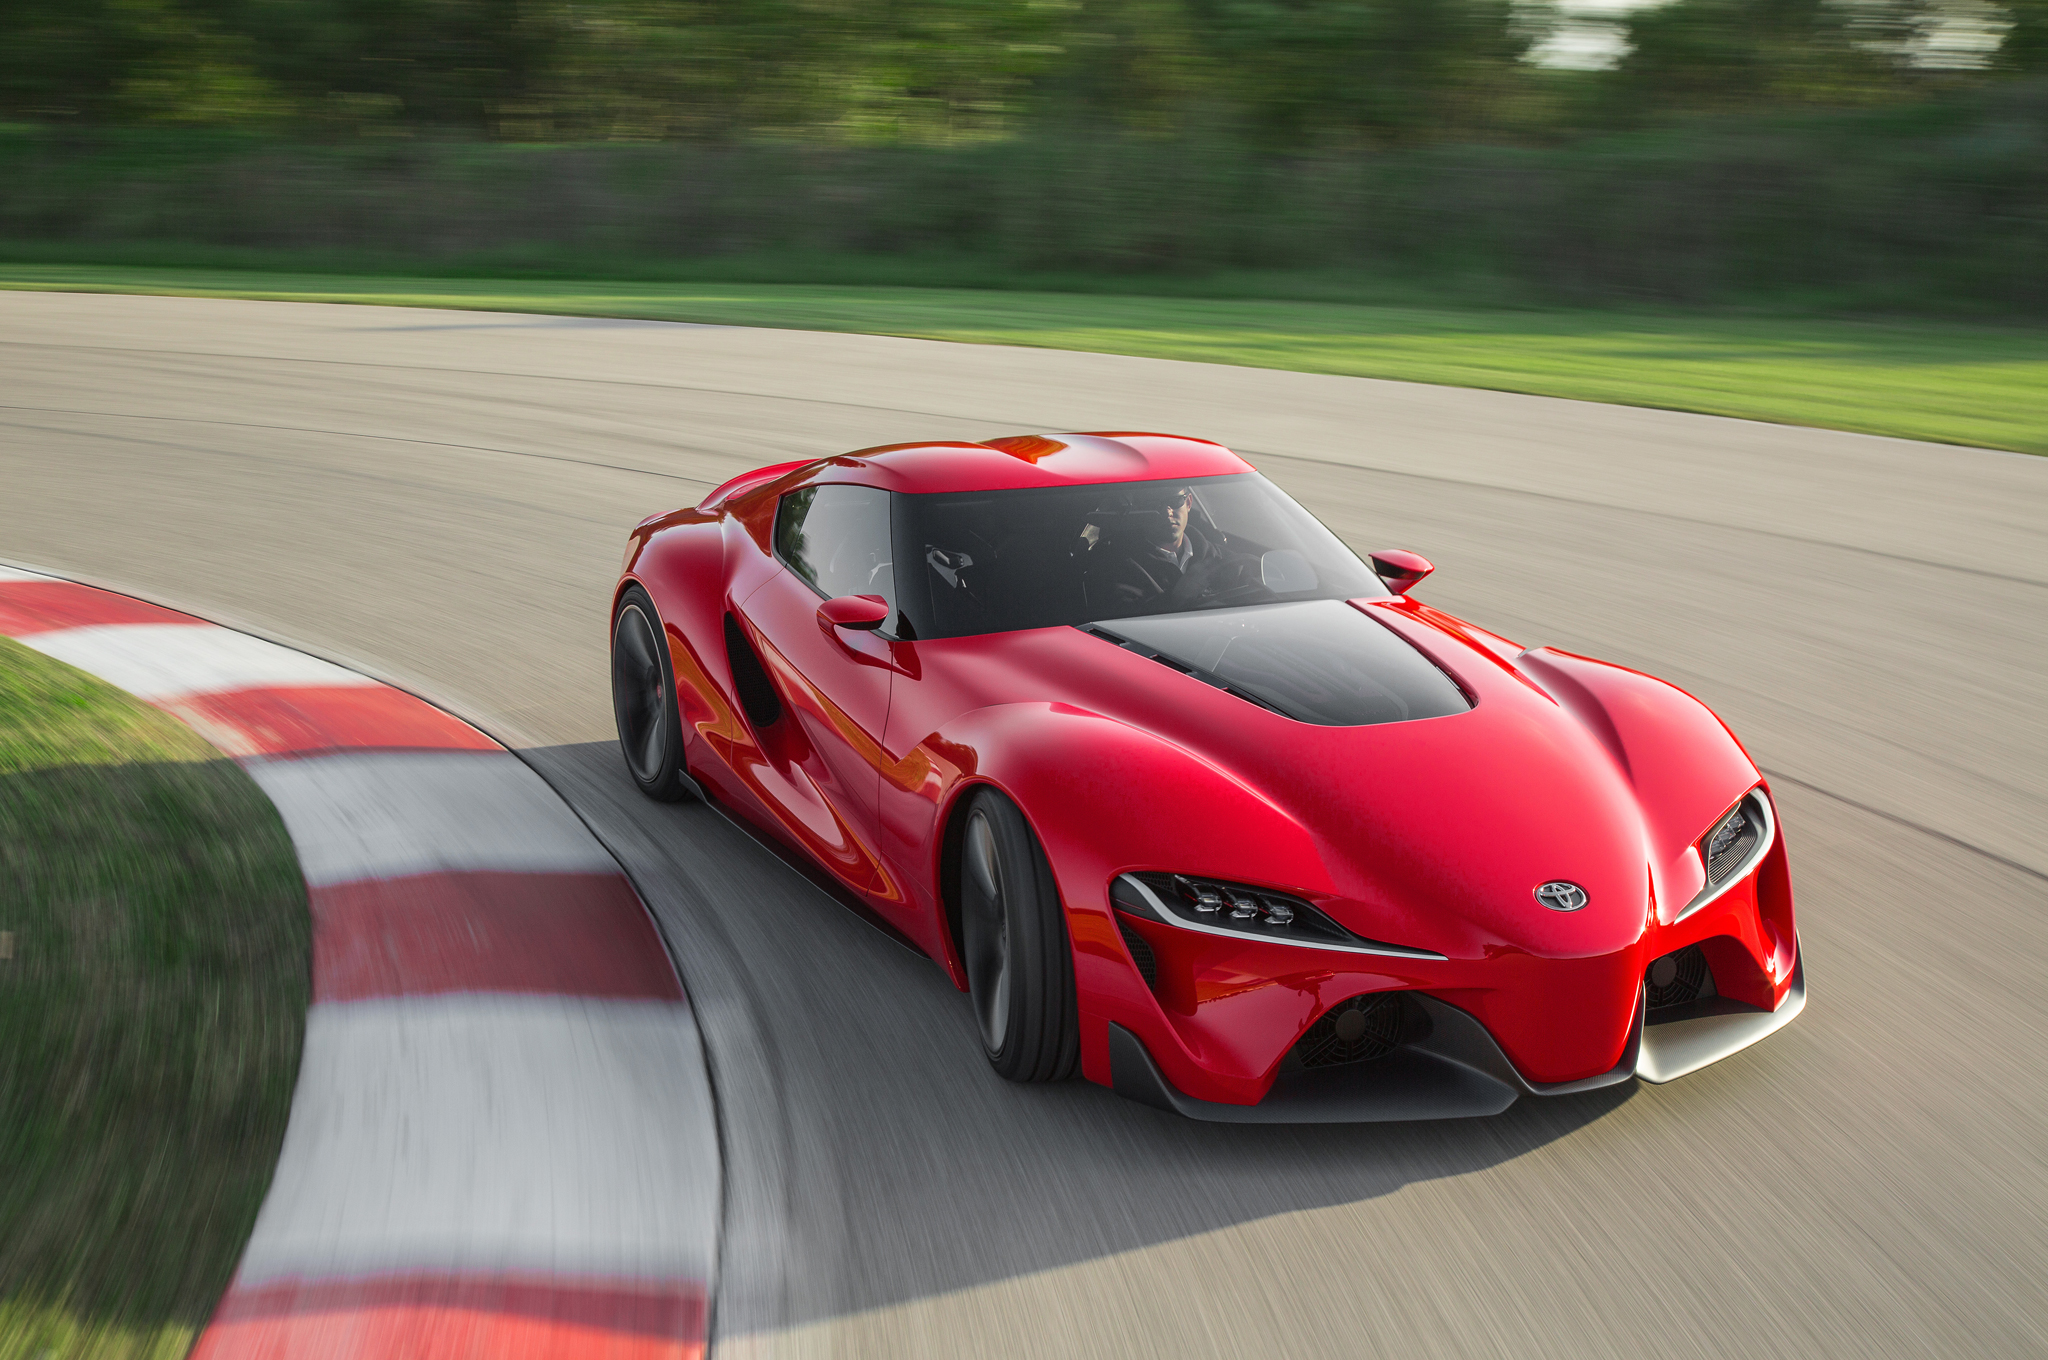 Toyota: Out with FJ, in with FT-1 - The Lohdown